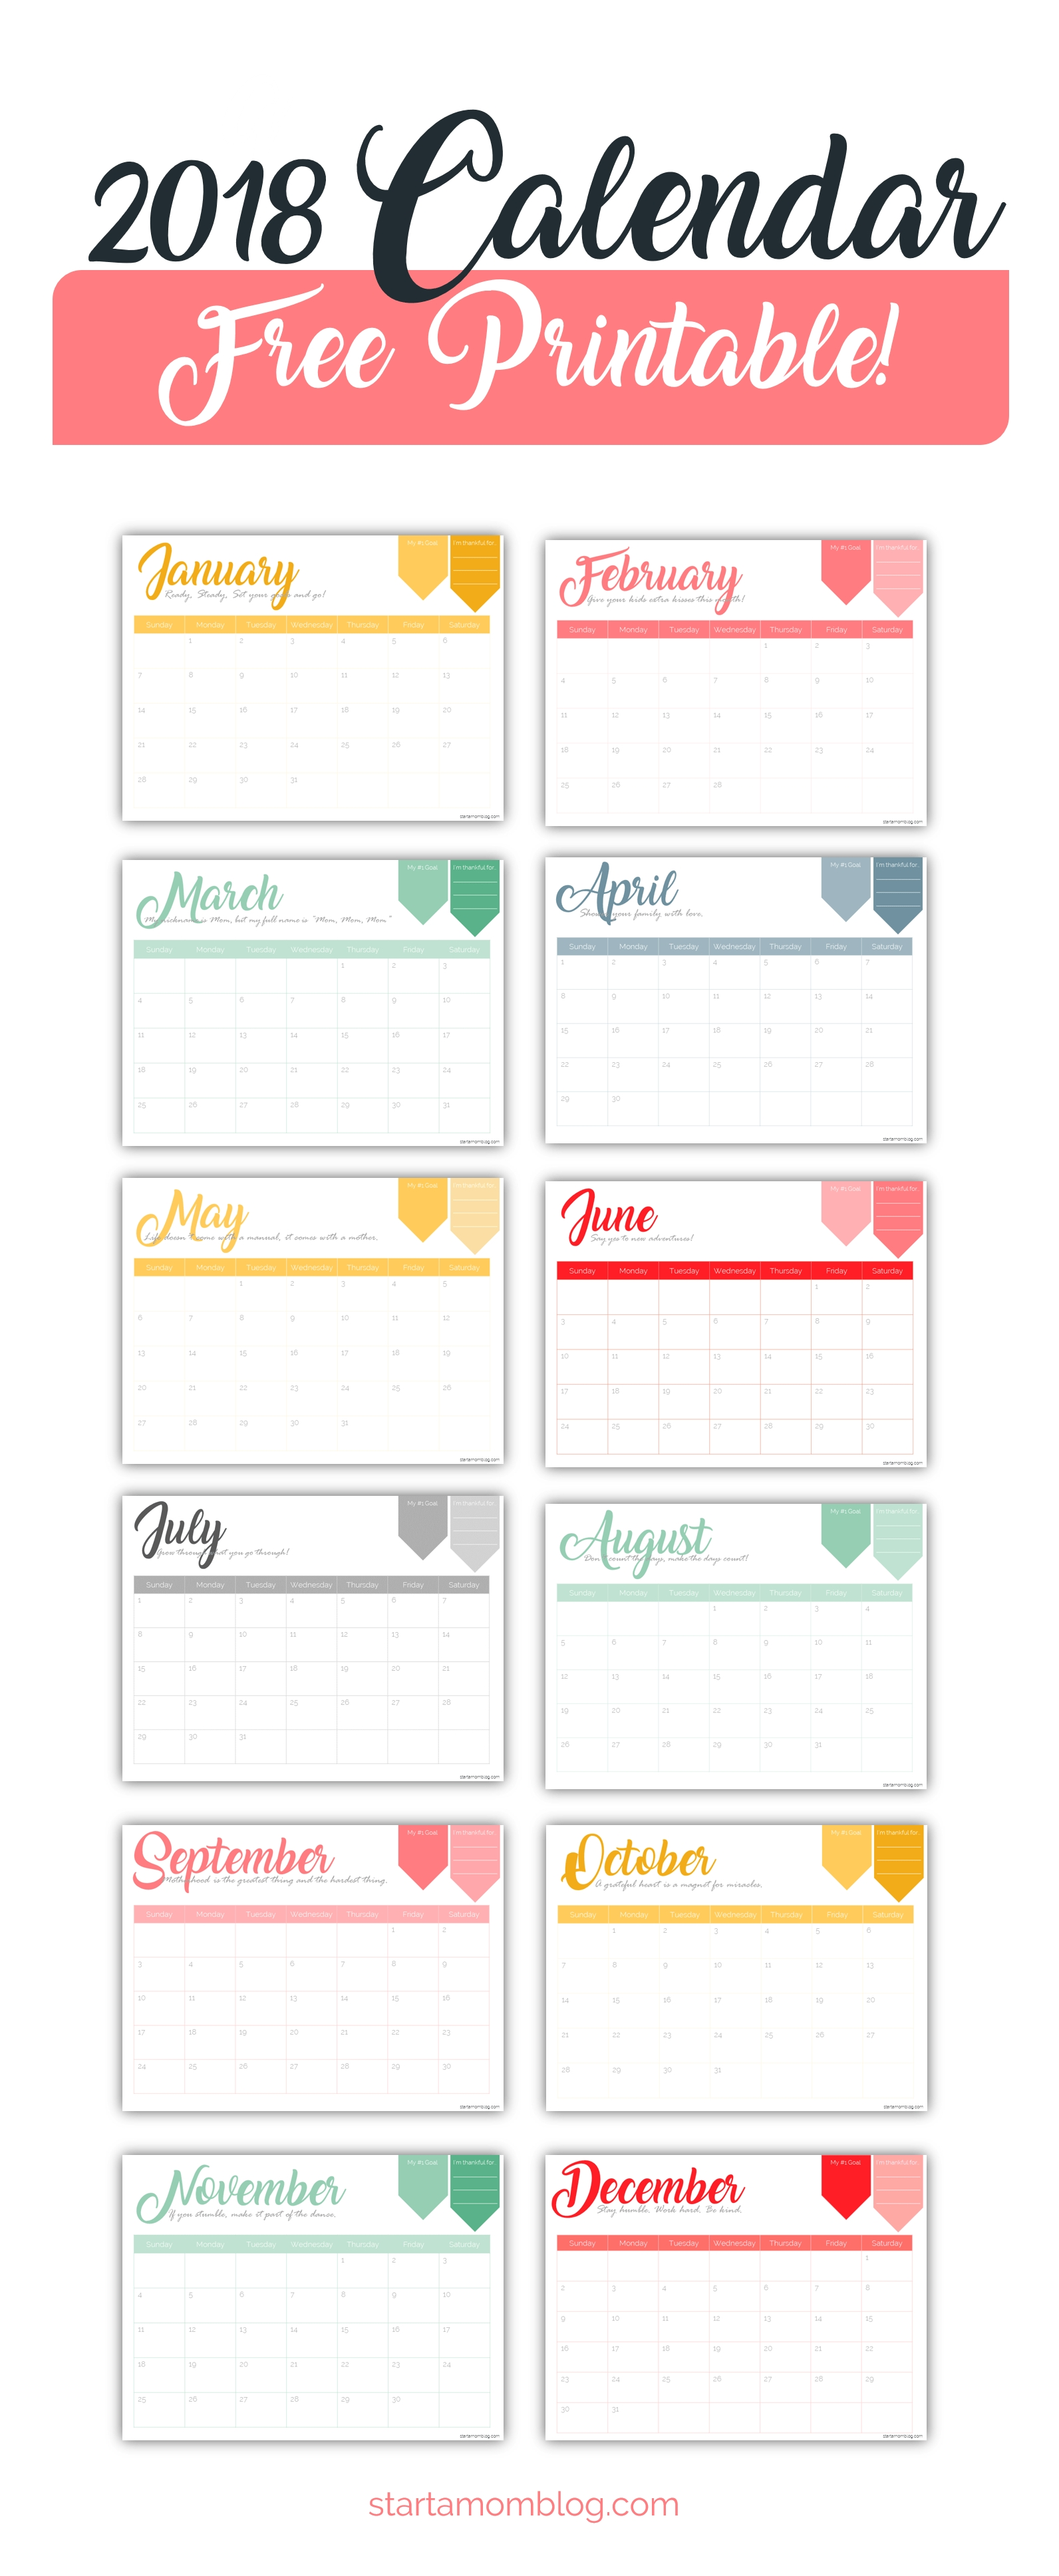 2018 Calendar Template Free Printable - Start A Mom Blog